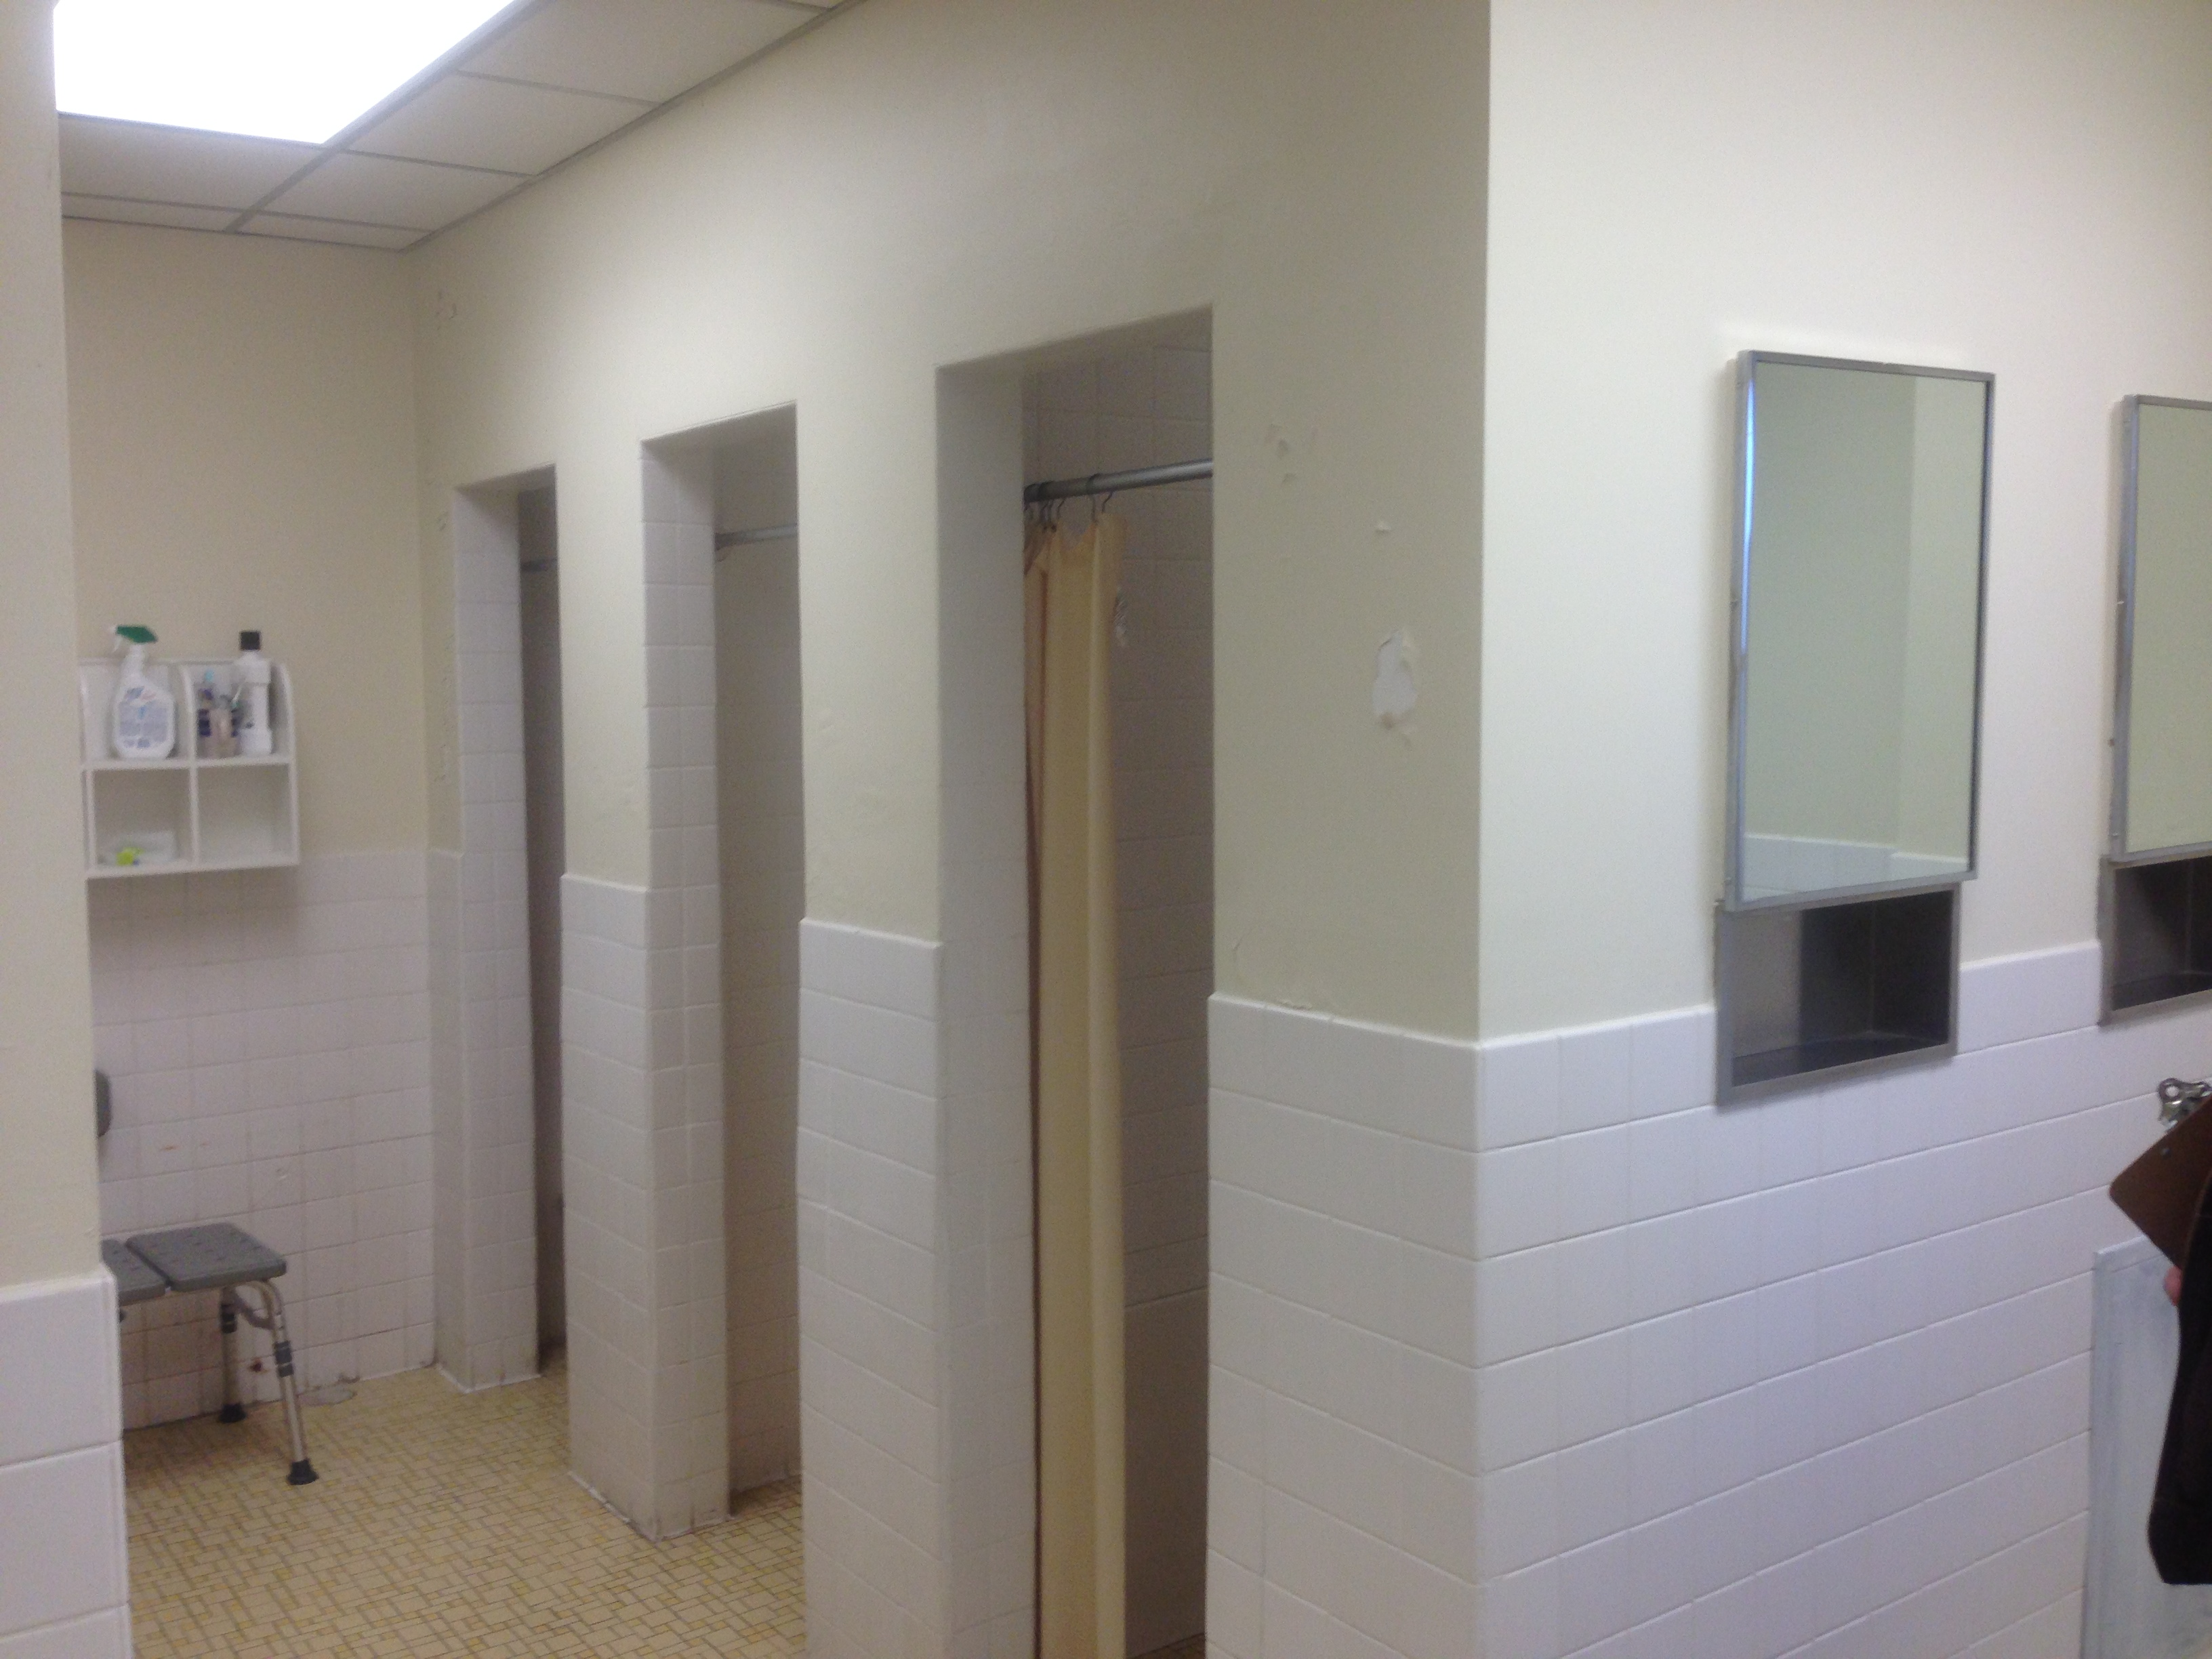 Public Restroom Renovation